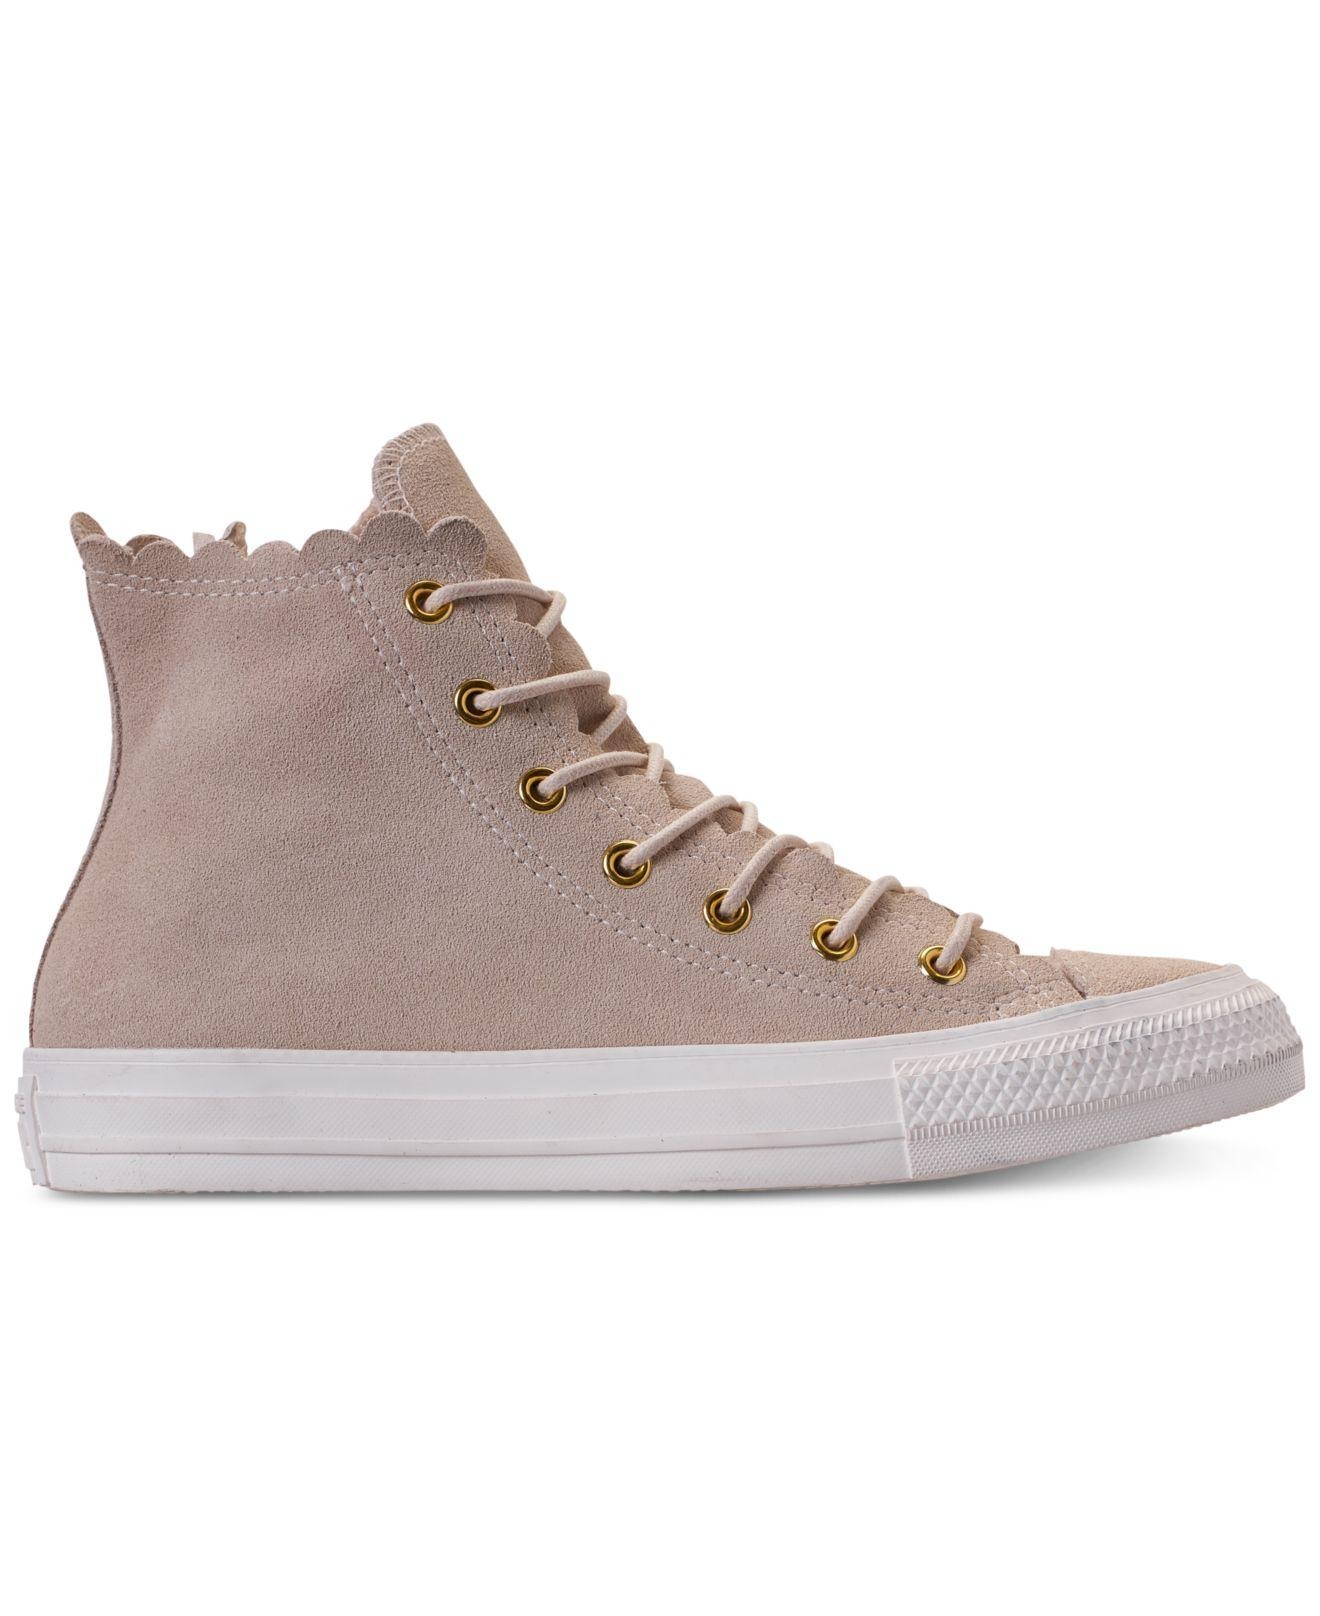 Lyst - Converse Chuck Taylor All Star Scallop Natural - Save 28% d7a699ba3